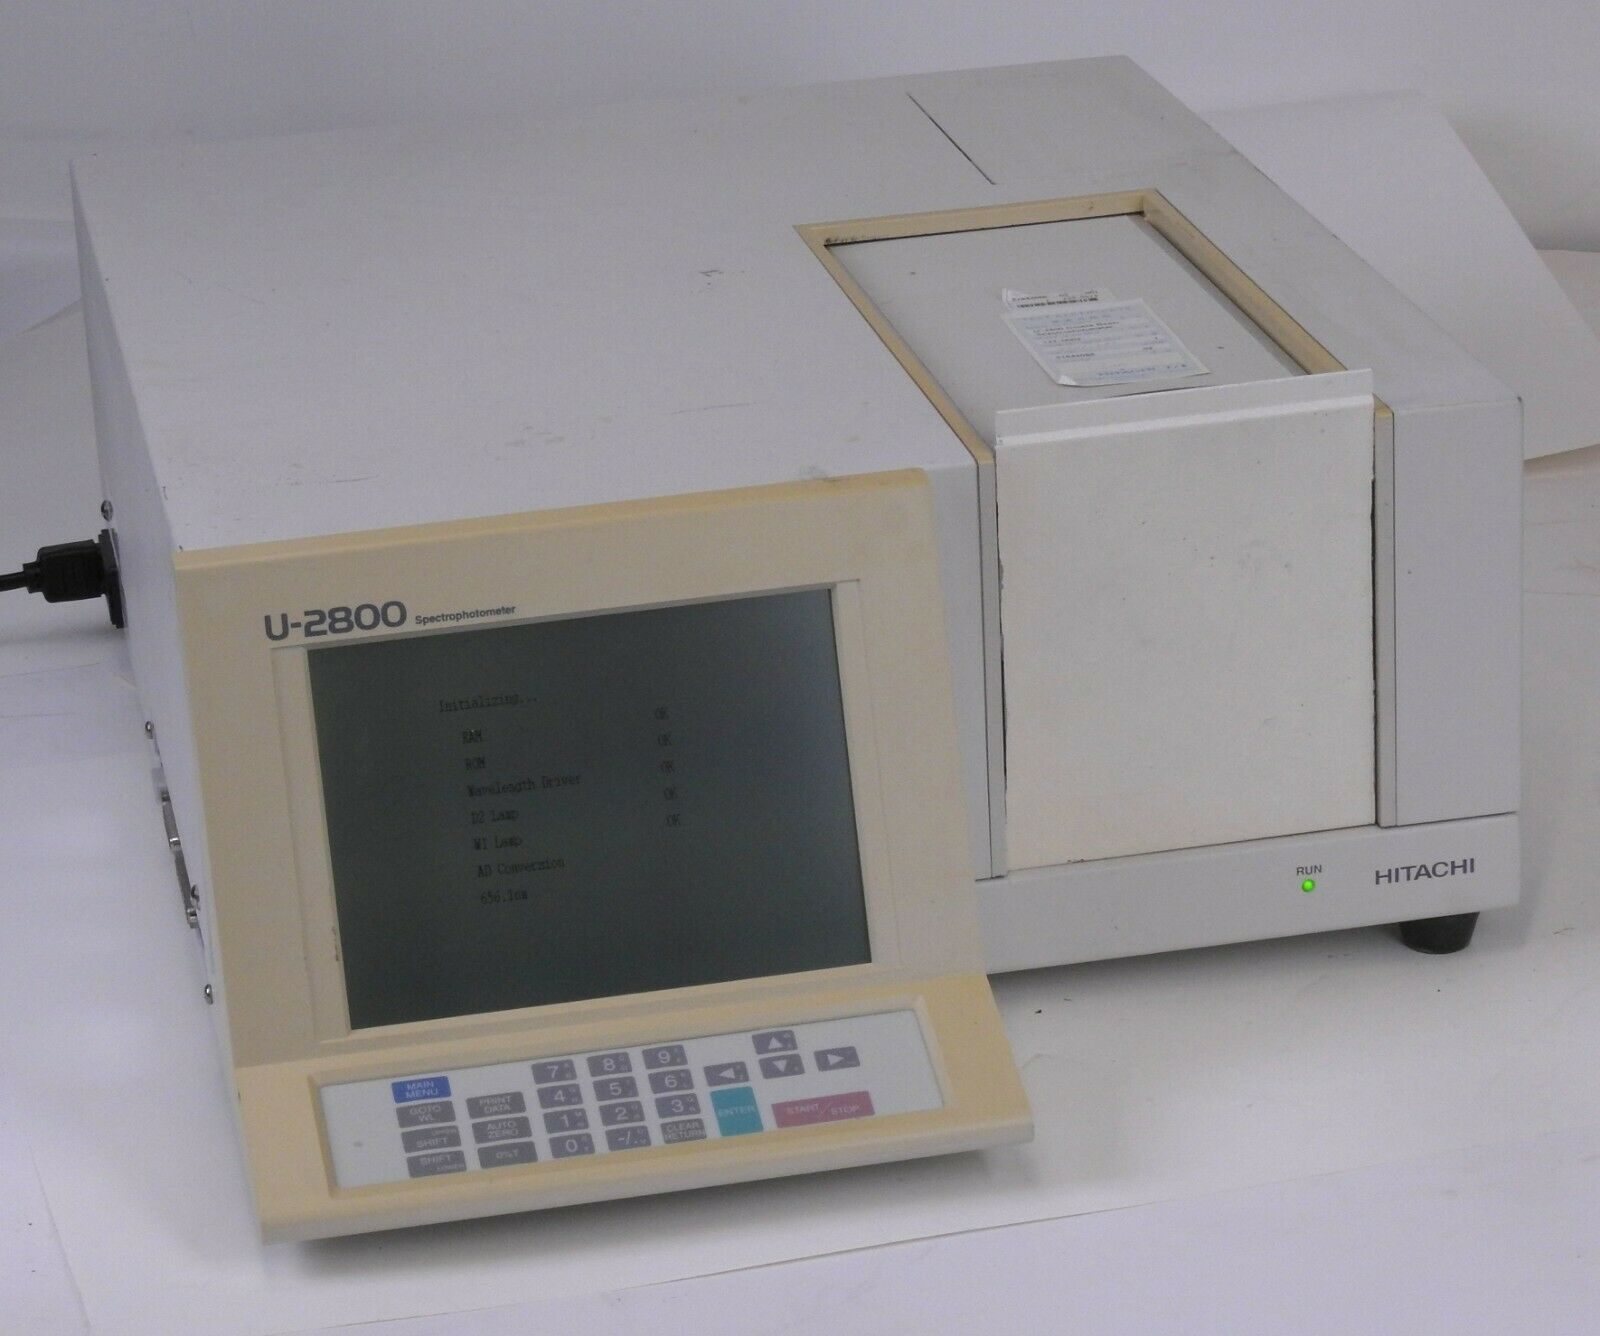 Hitachi U-2800 Spectrophotometer